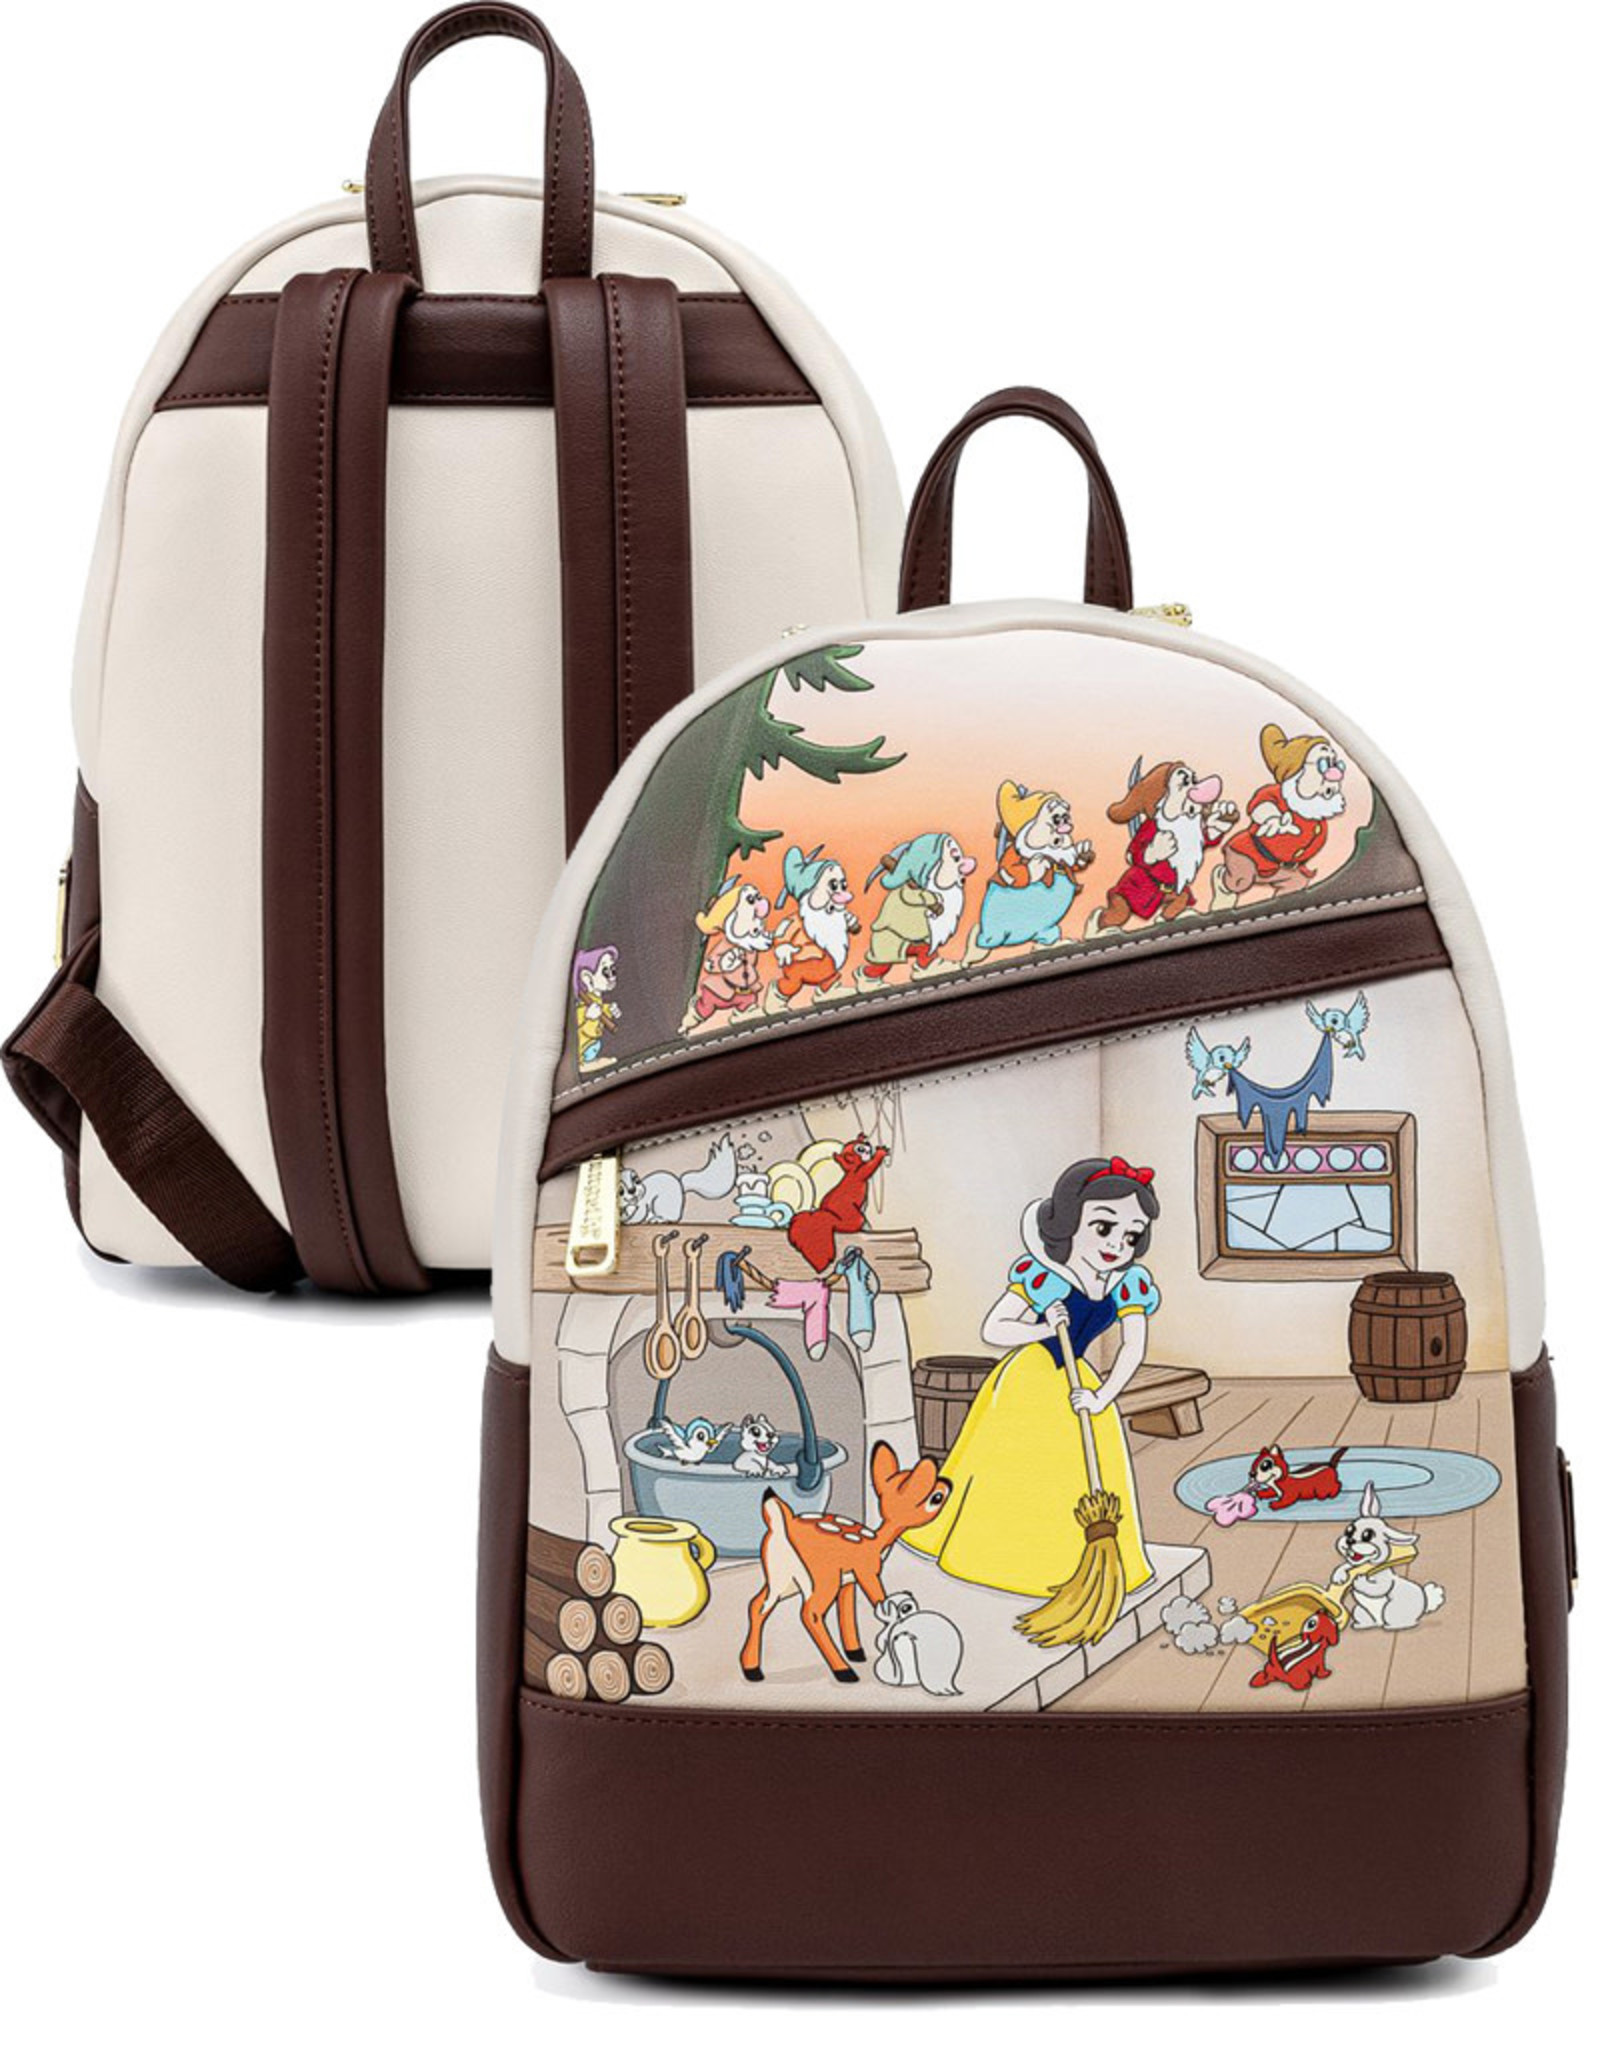 Disney ( Loungefly Mini Backpack ) SNOW WHITE AND THE SEVEN DWARFS